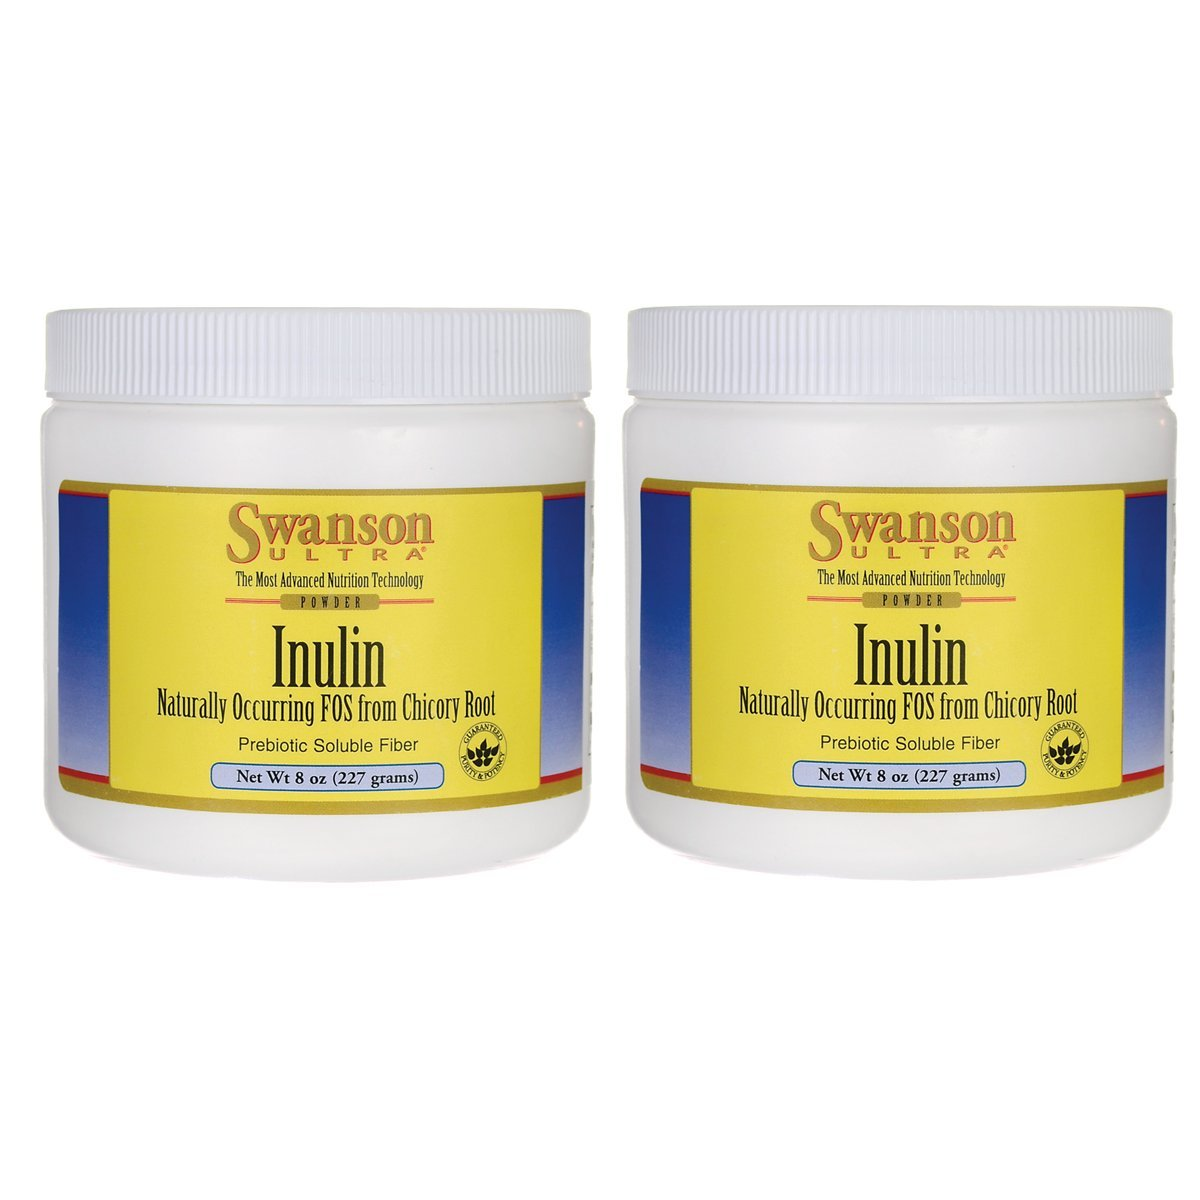 Swanson Inulin Powder 8 Ounce (227 g) Pwdr 2 Pack